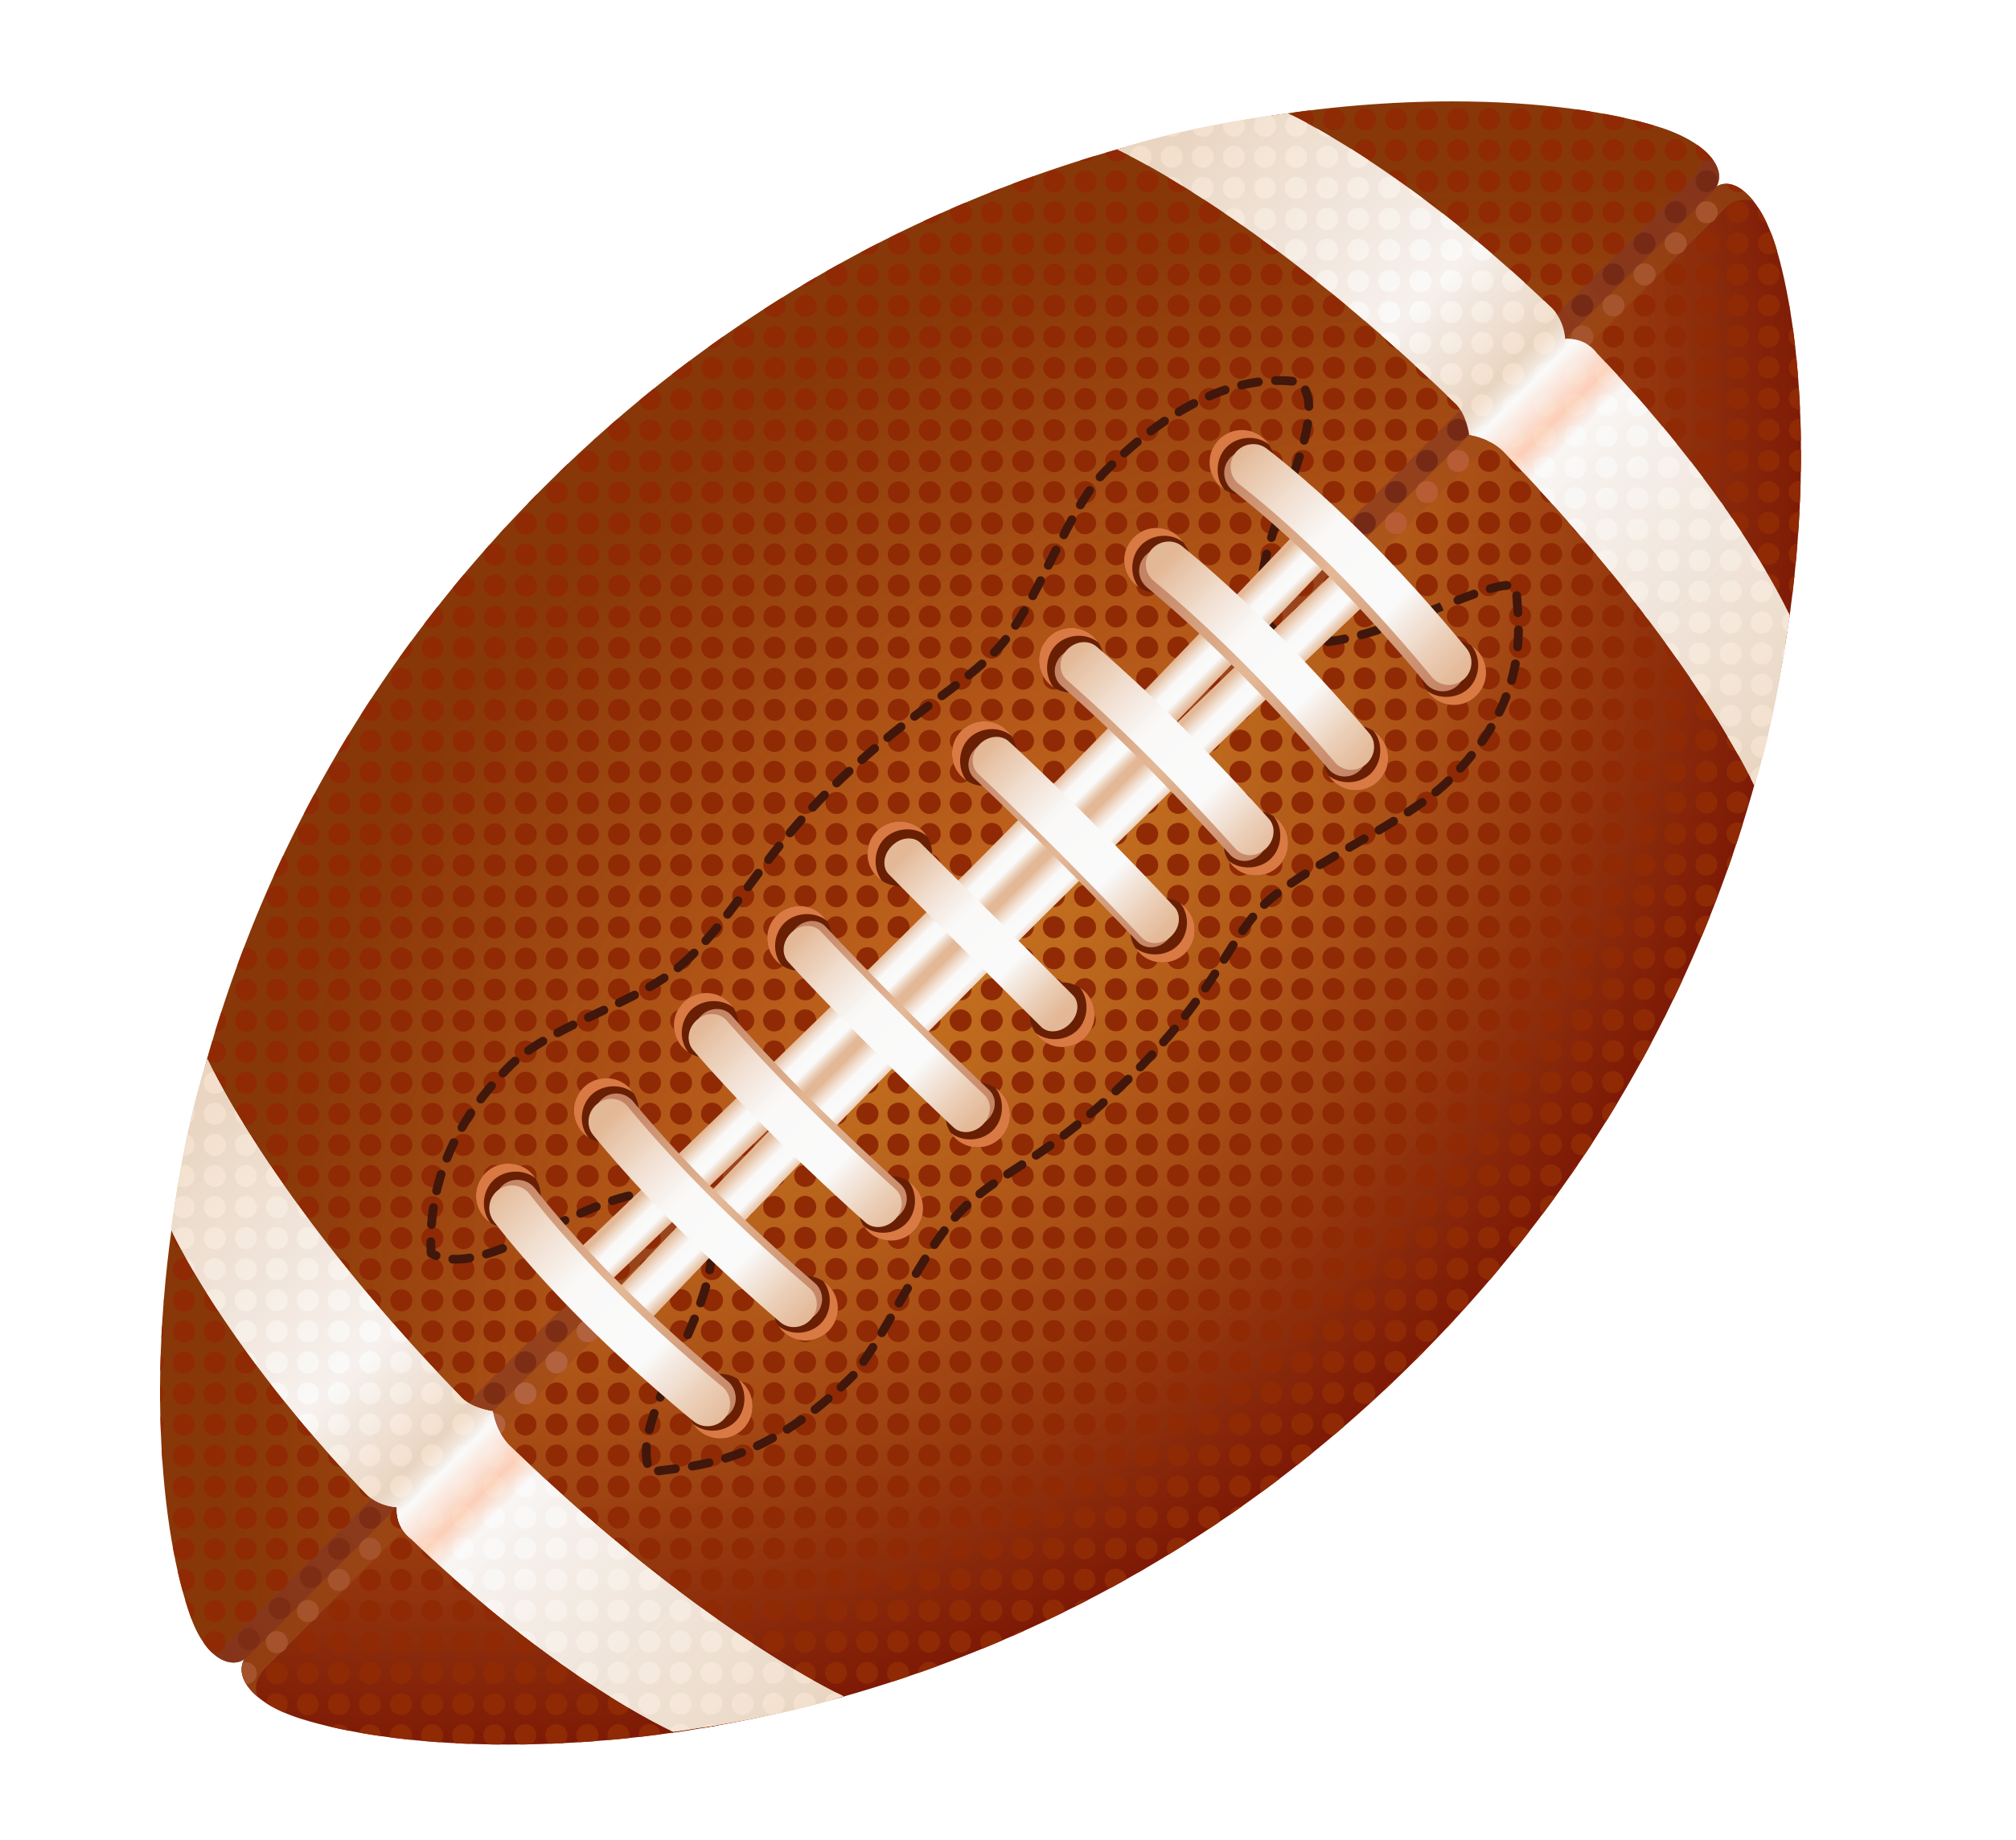 Clipart halloween football. American ball png picture